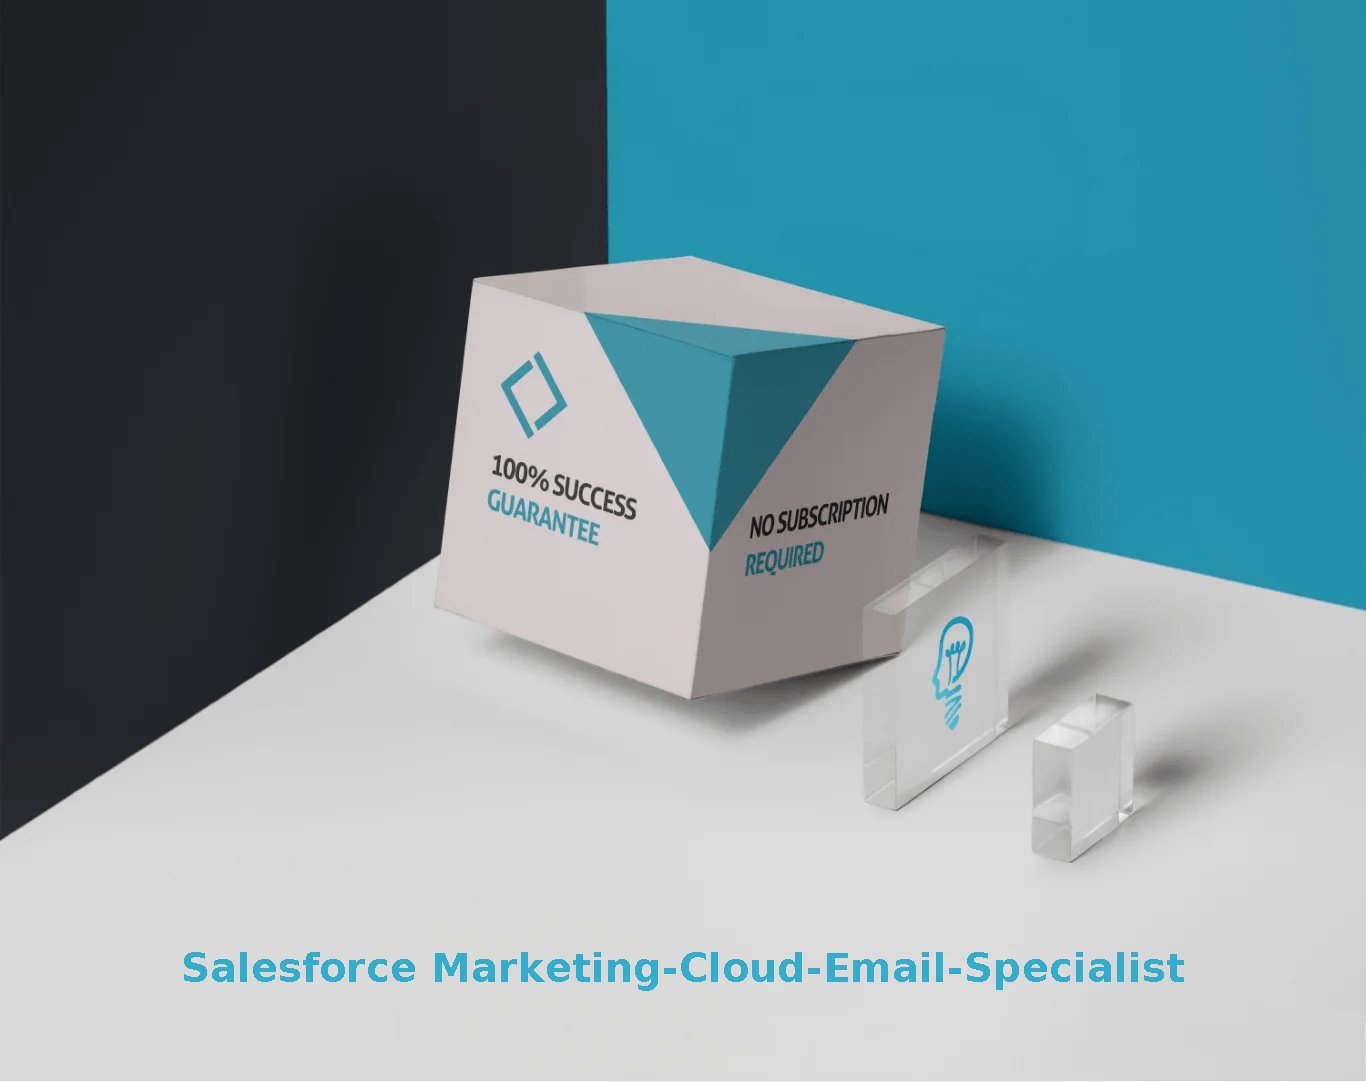 Salesforce Marketing-Cloud-Email-Specialist Exams